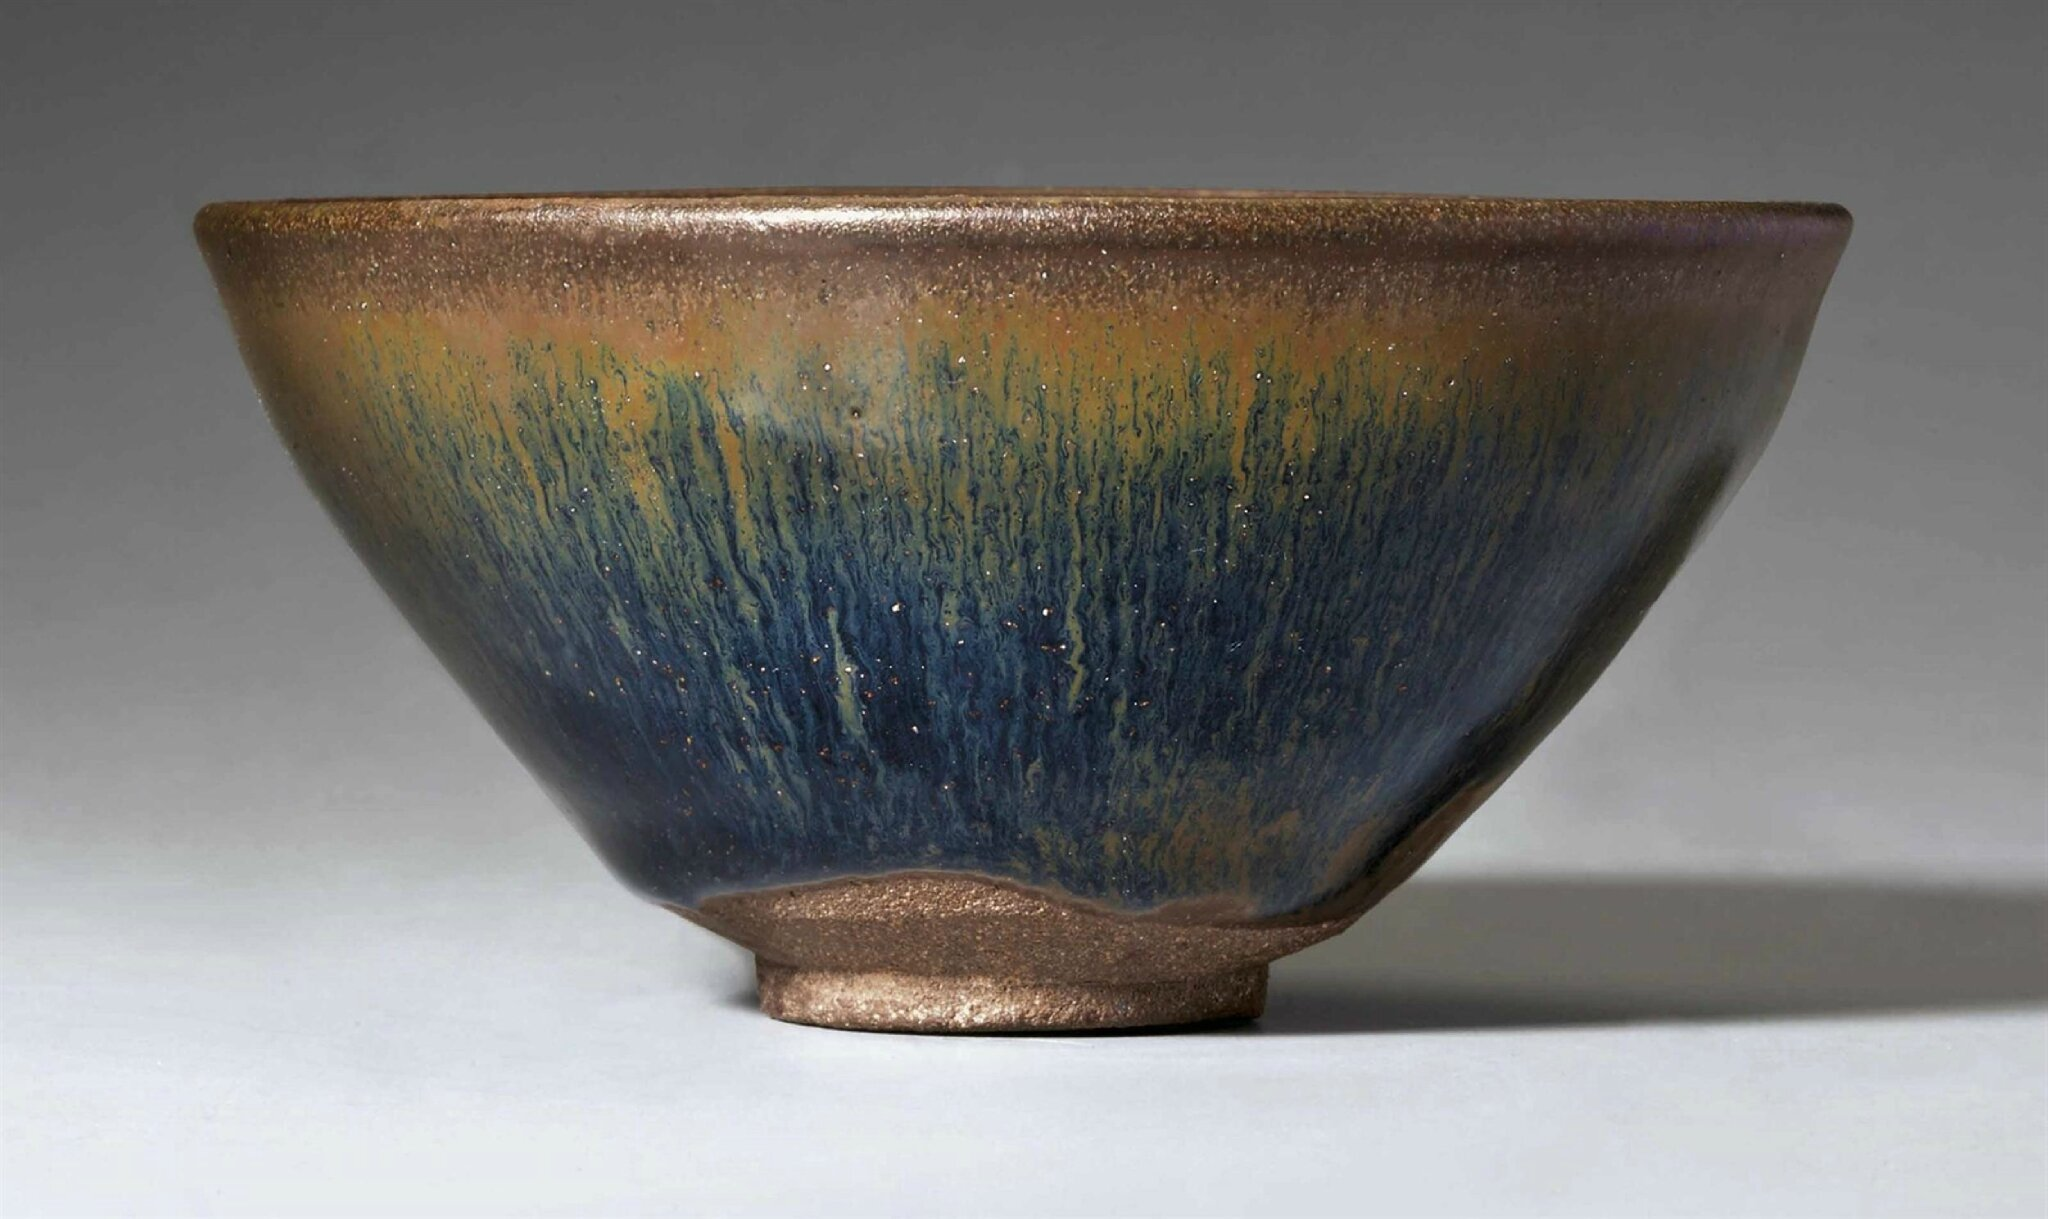 A Jianyao 'Hare's fur' tea bowl, Southern Song Dynasty, 12th-13th century